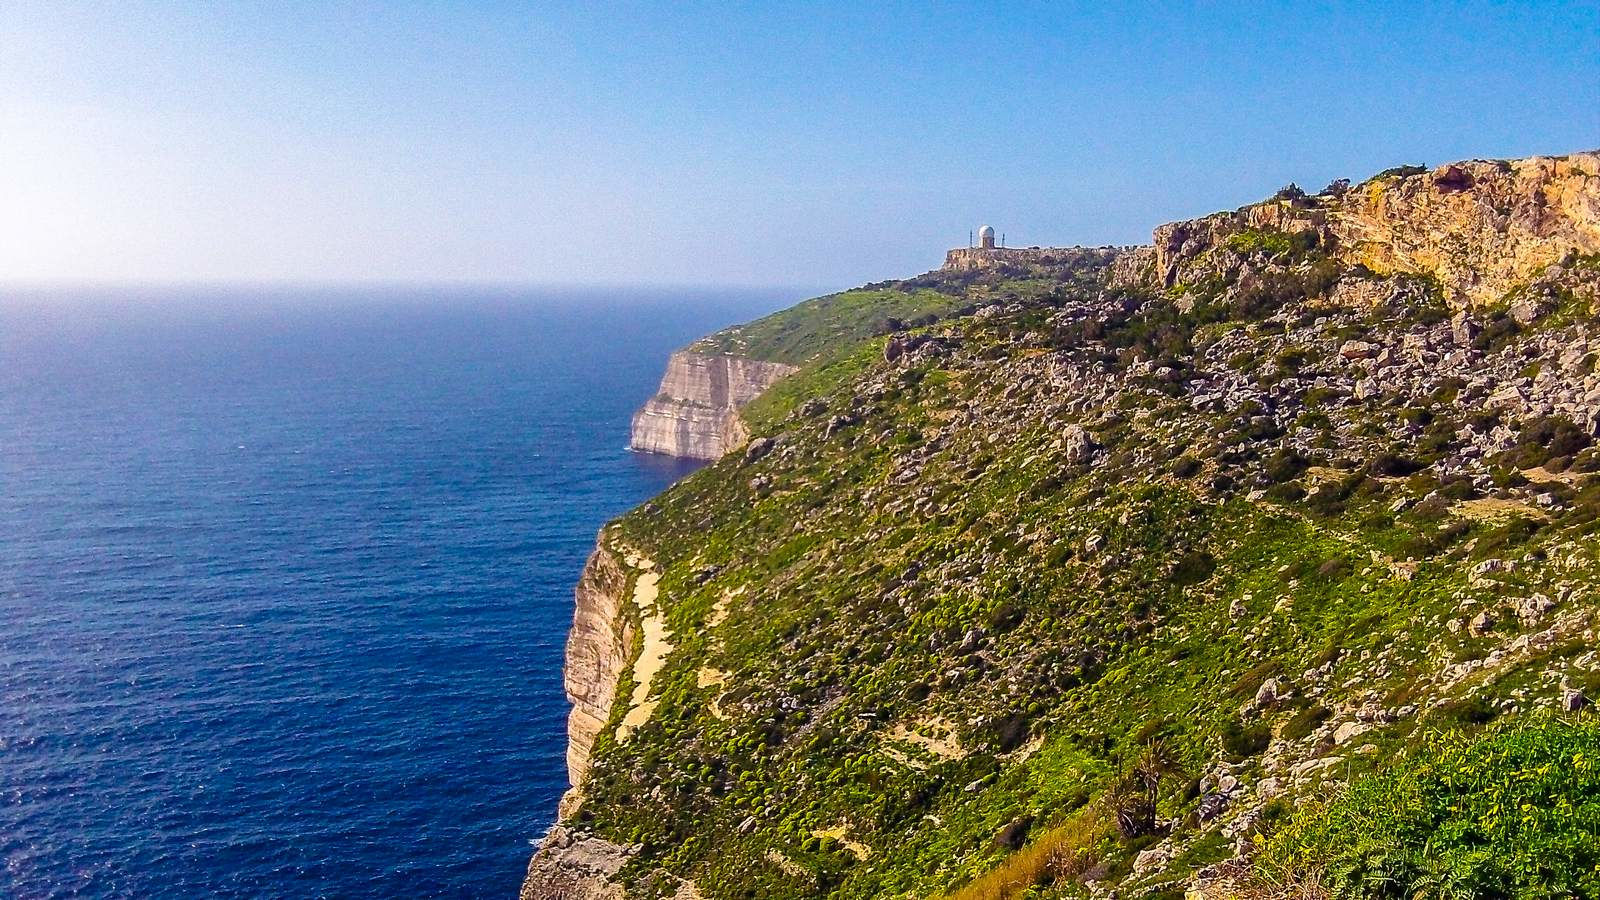 Discover the Dingli Cliffs and Malta from Le Méridien St. Julians Hotel & Spa